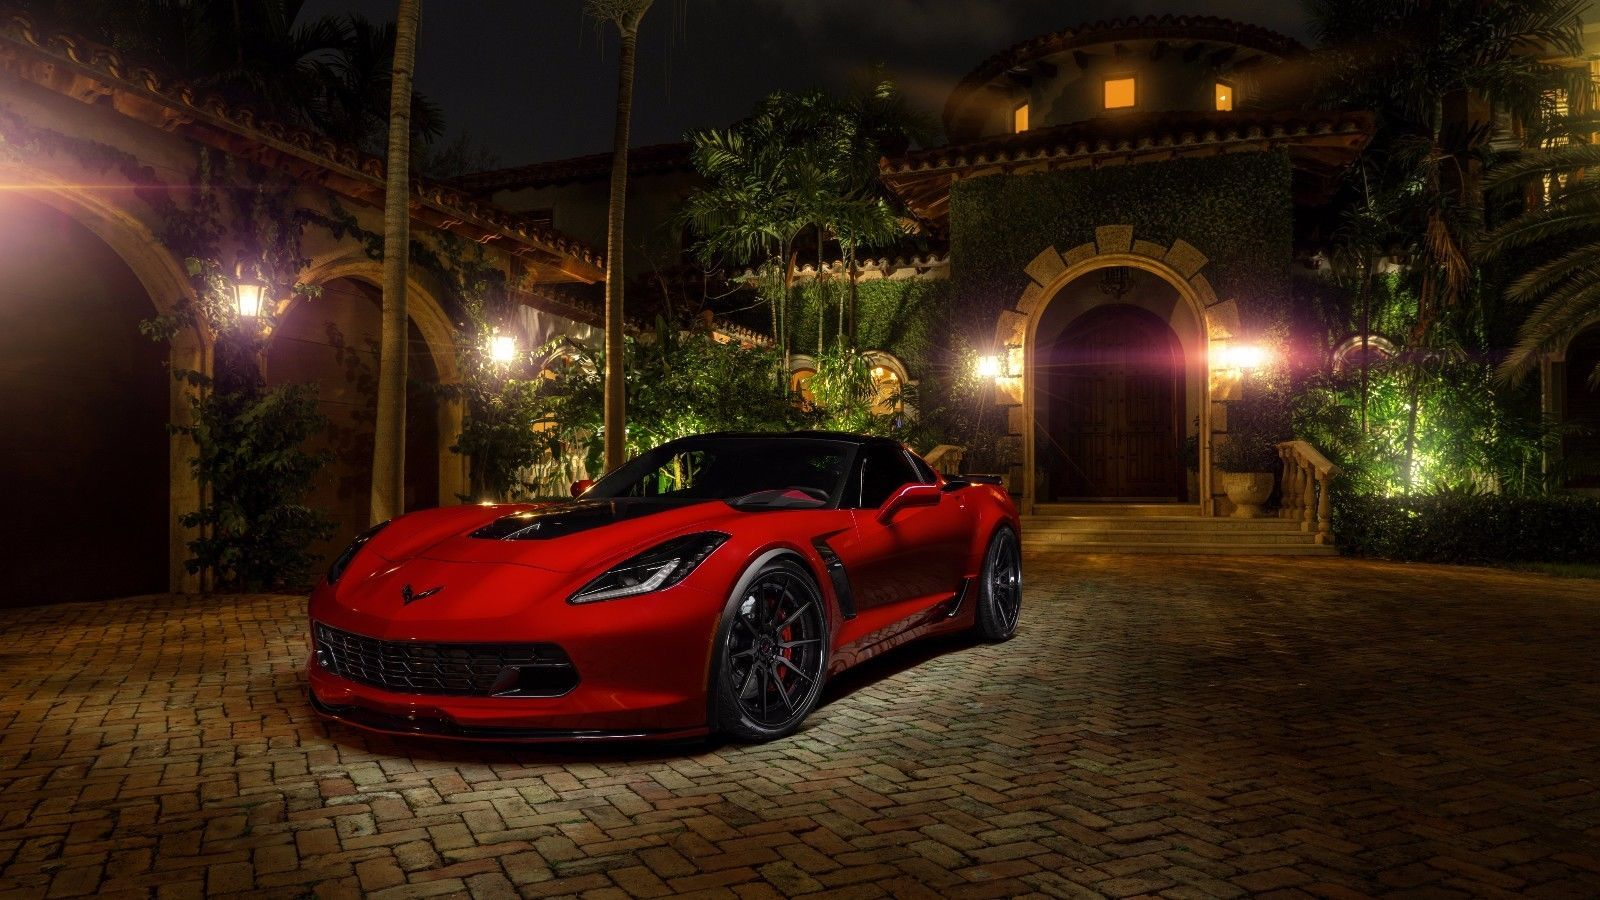 Primary image for 2017 Chevrolet Corvette c7 z06 red 24X36 inch poster, sports car